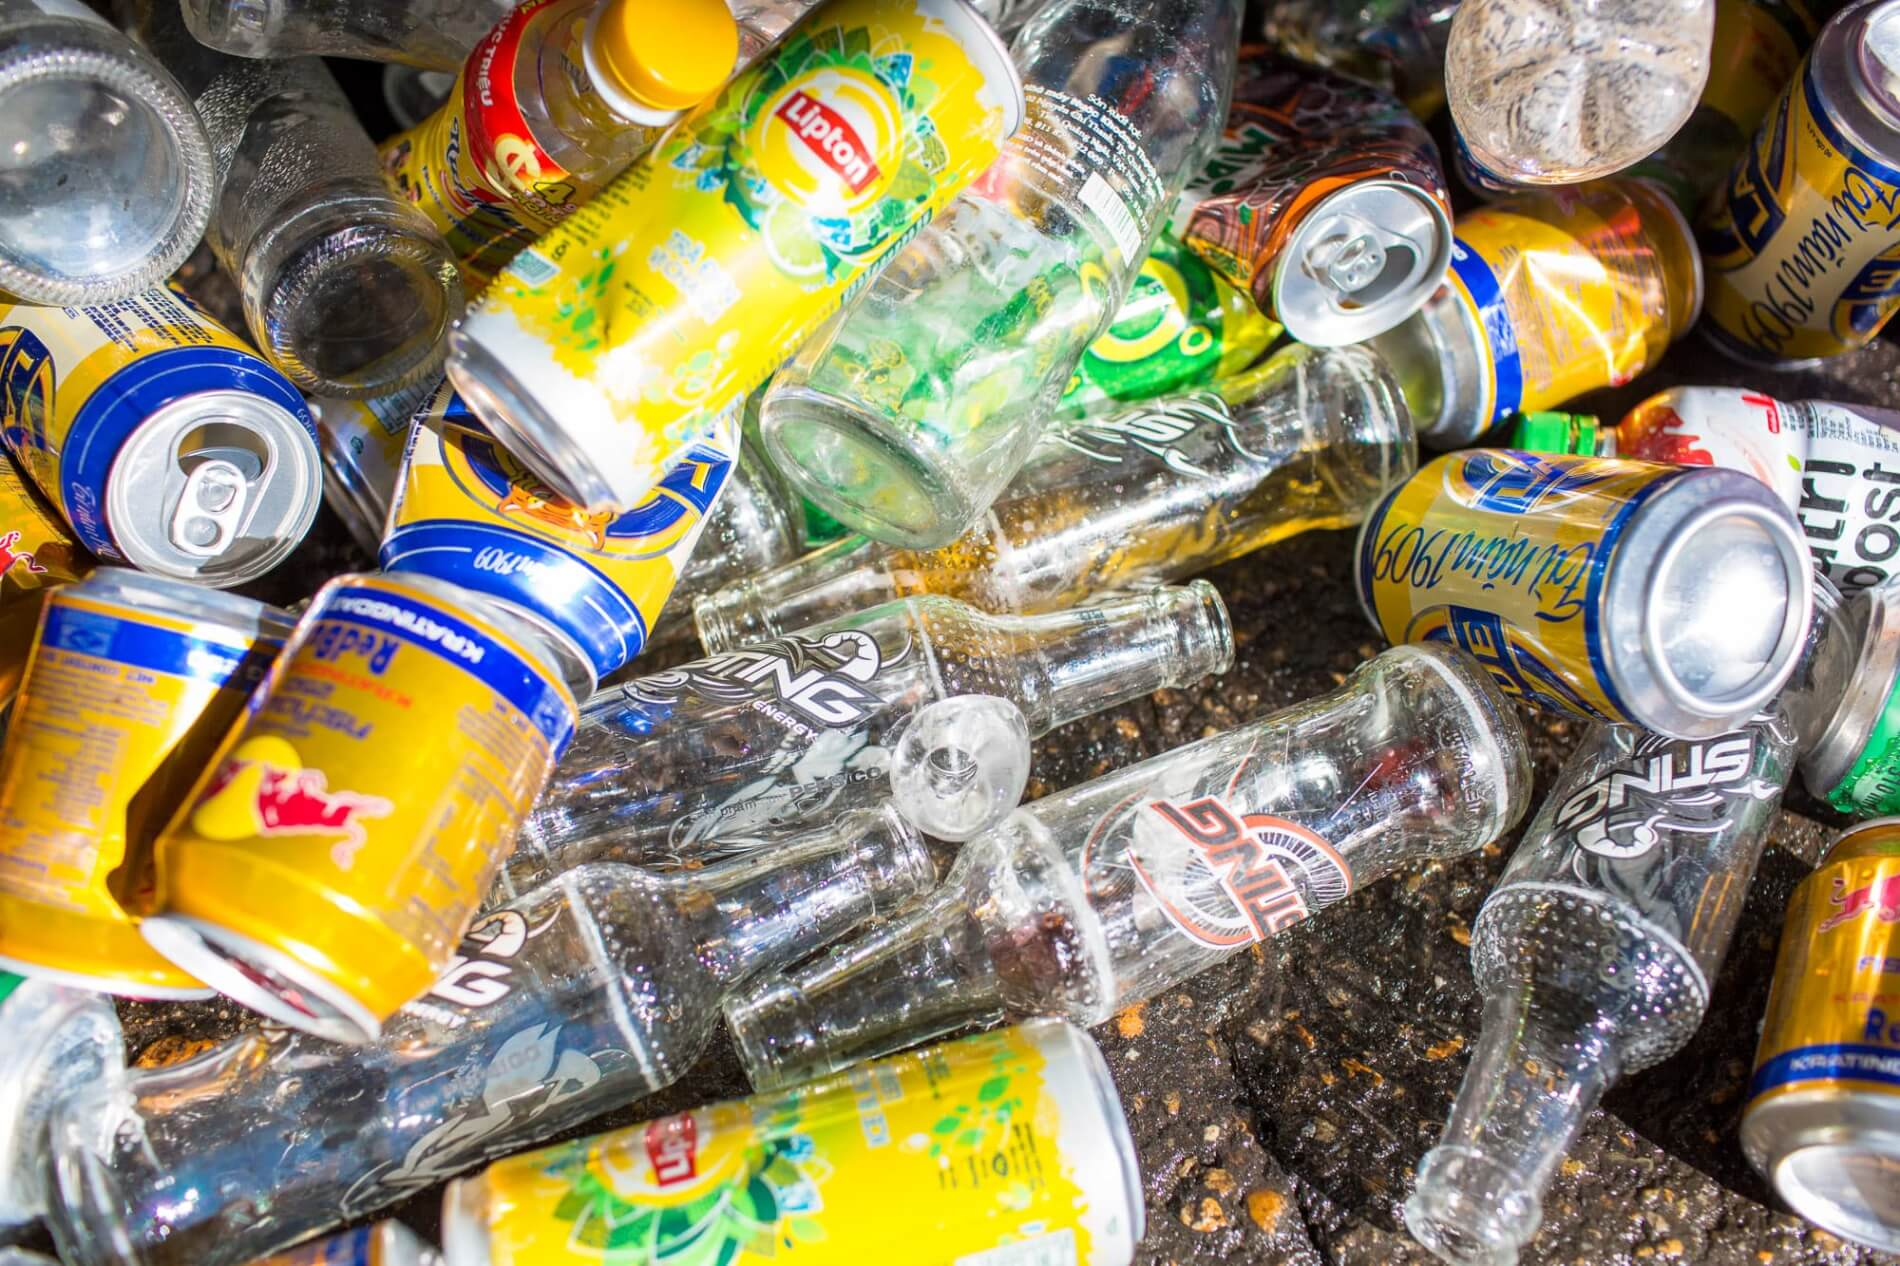 Cans and bottles for recycling